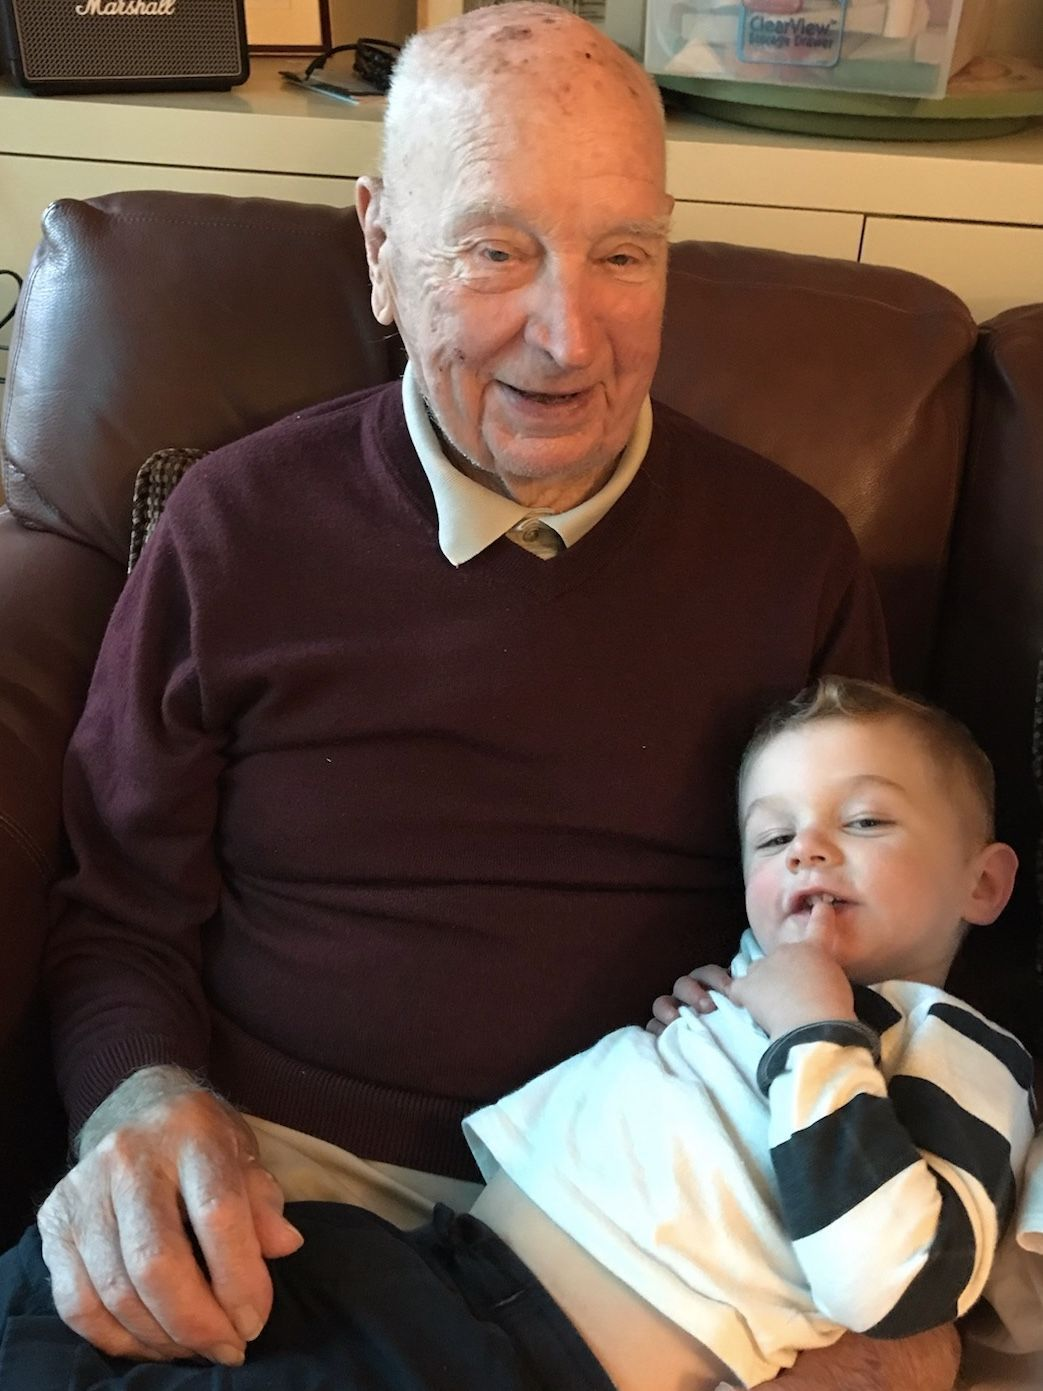 Jack Welch with great-grandson Evan